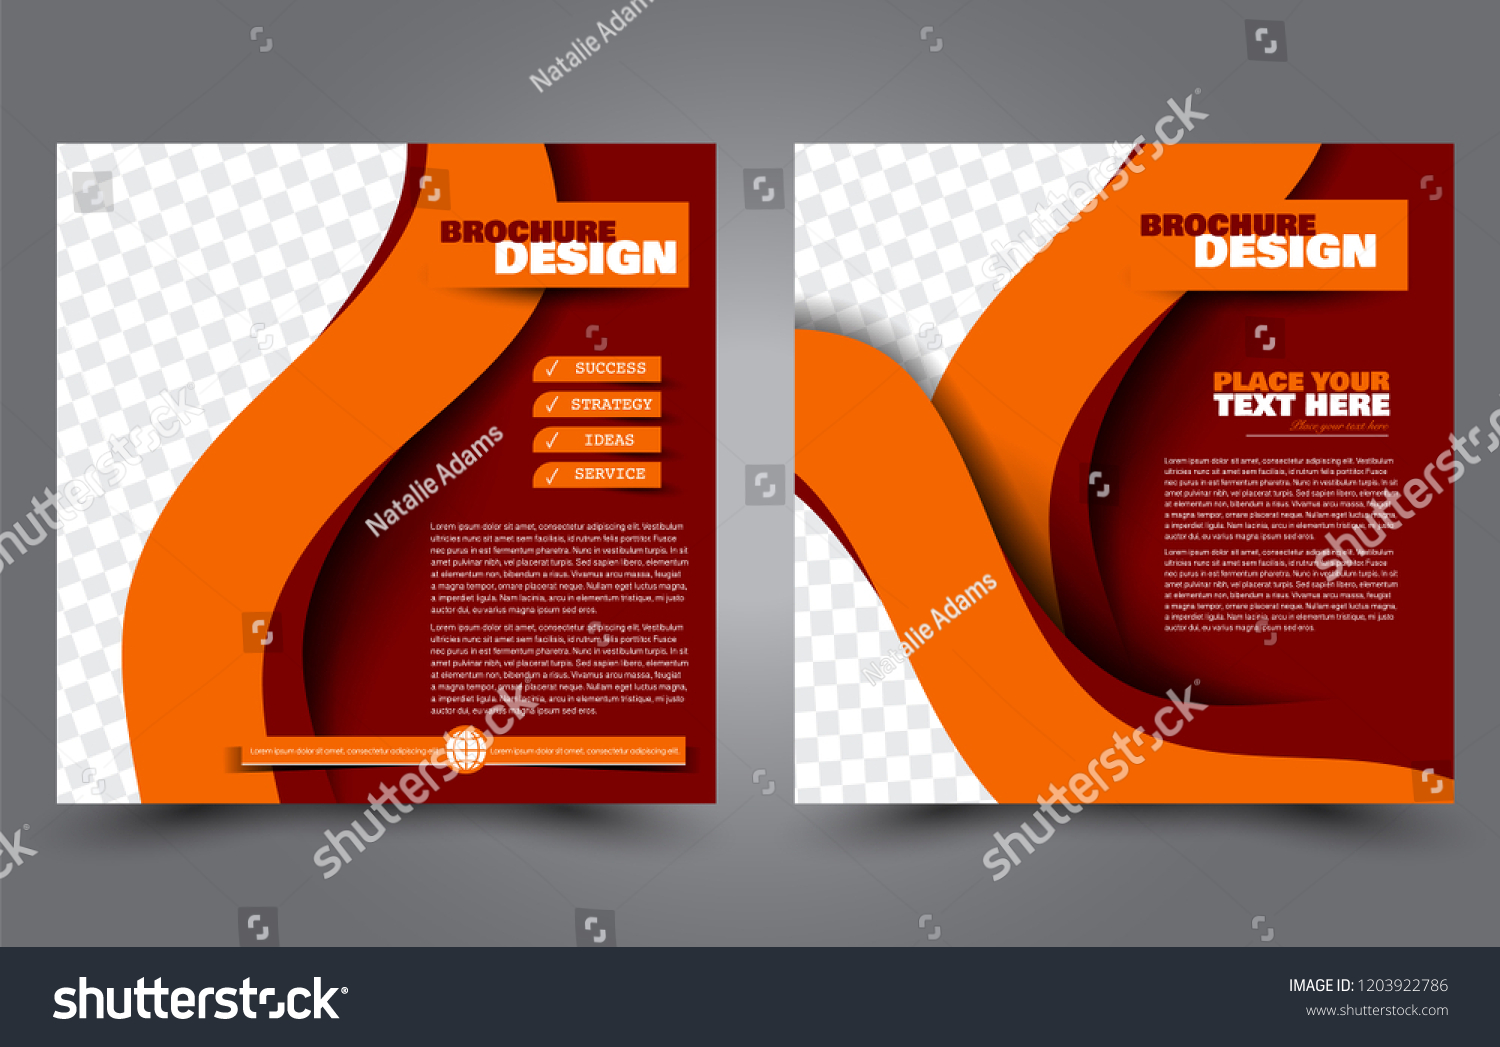 Flyer Ideas Square Flyer Template Simple Brochure Design Stock Vector Royalty